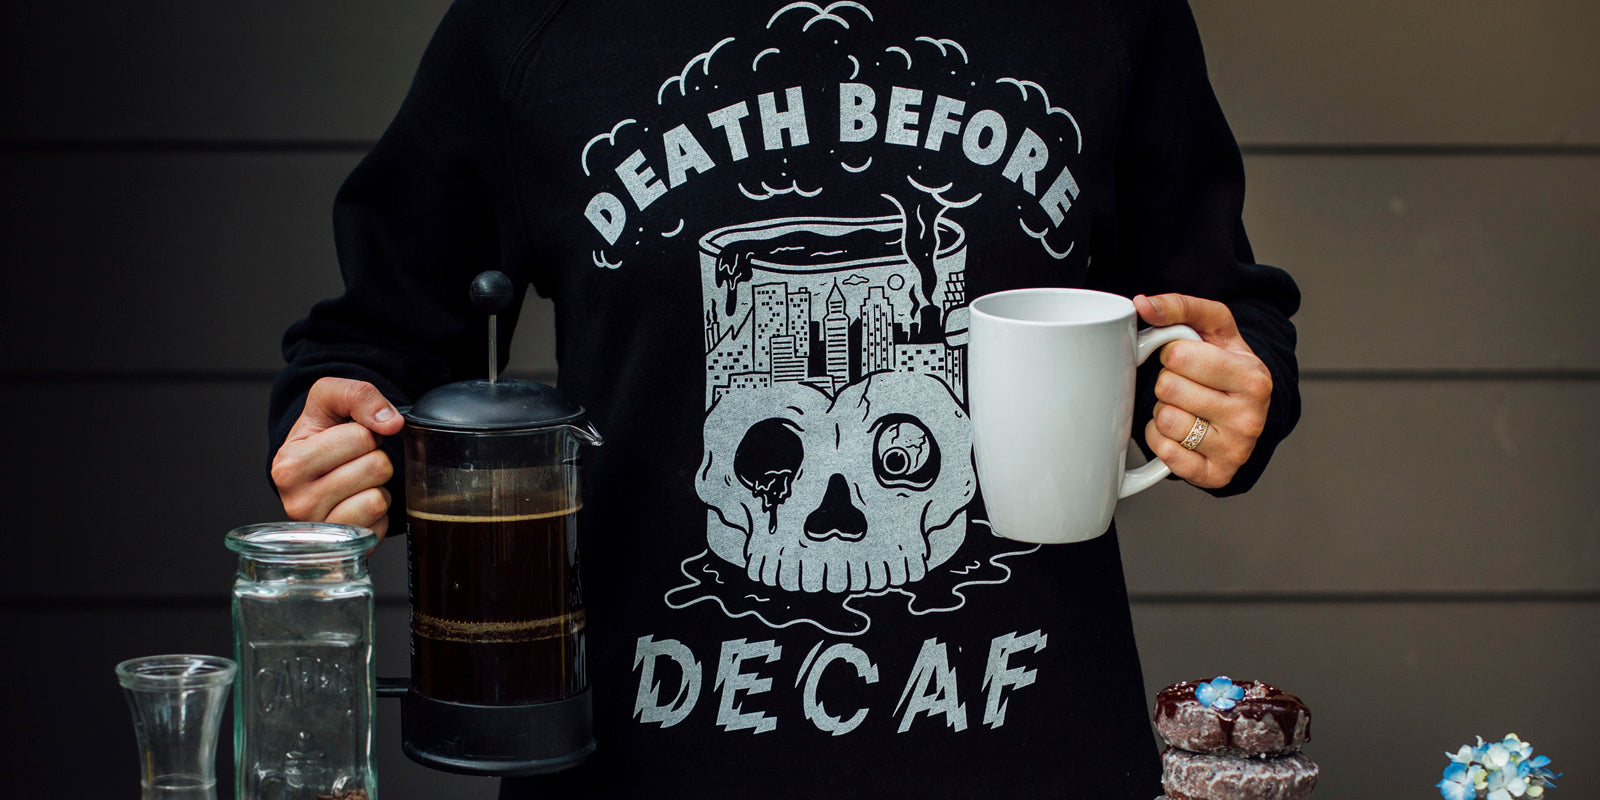 Death Before Decaf Coffee Unisex Adult Vintage-Inspired Raglan Crewneck Sweatshirt